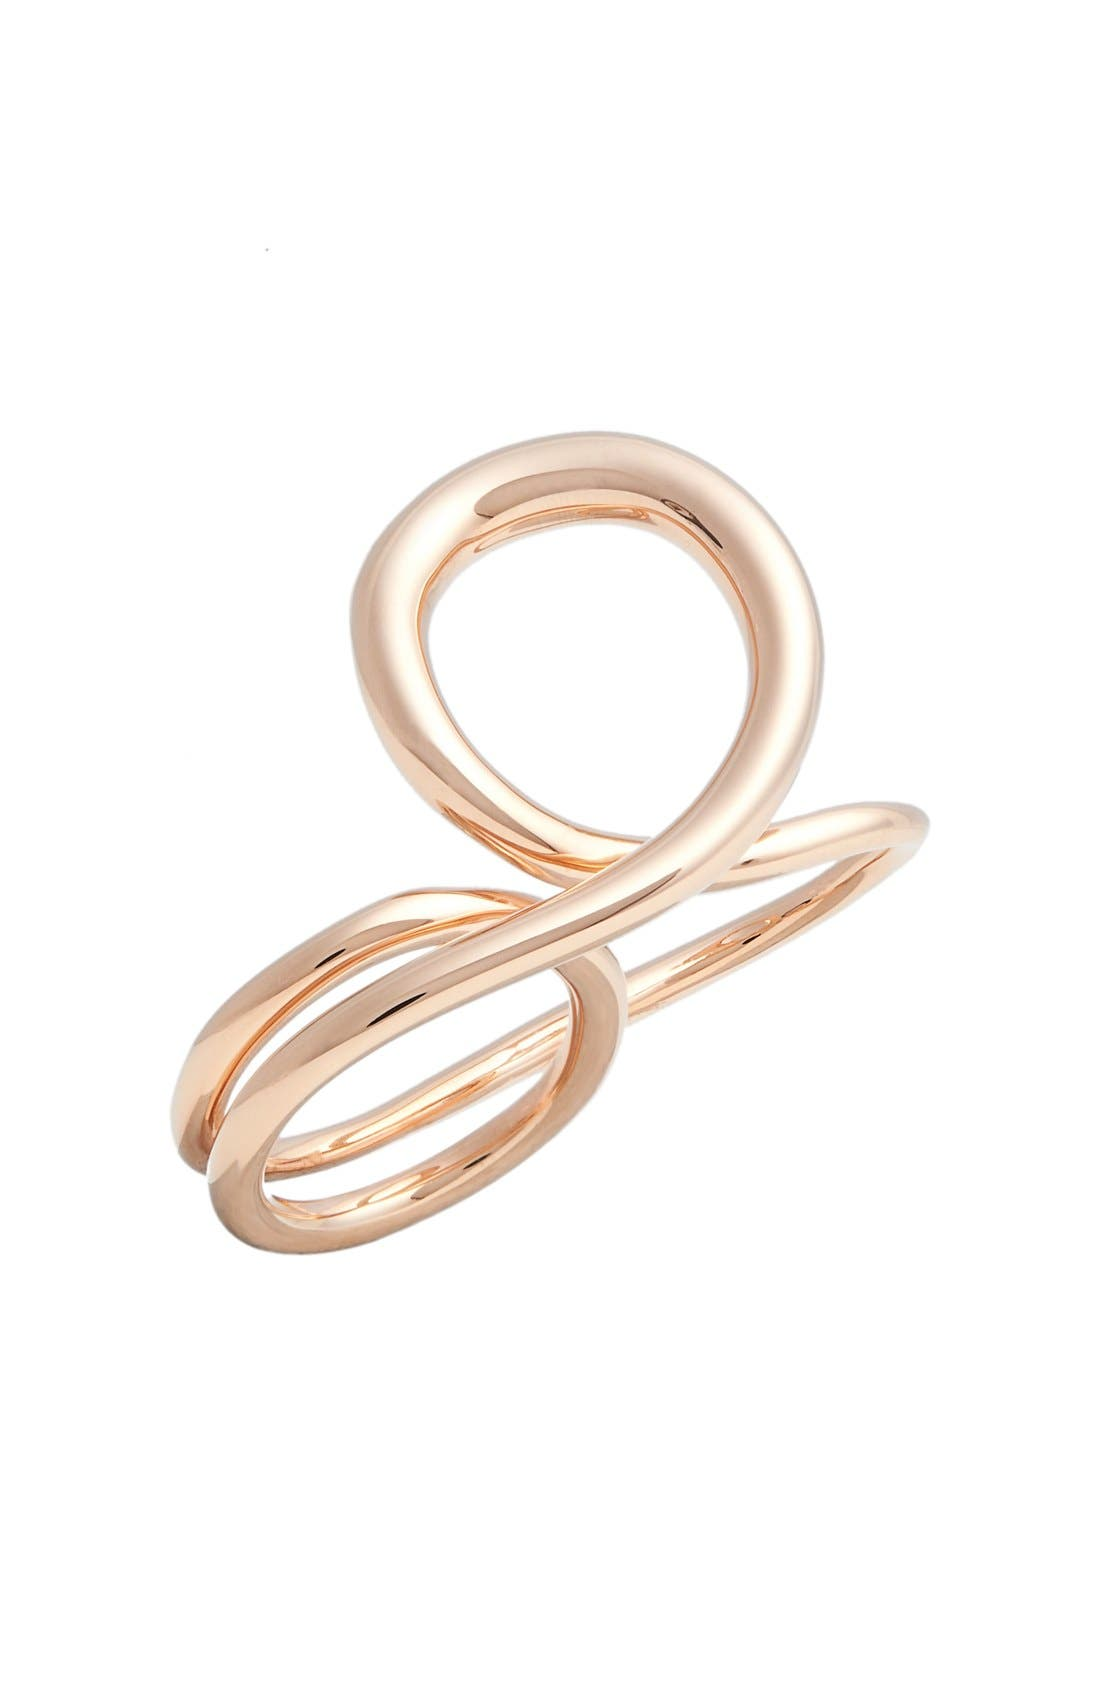 'Gamma Trip' Vermeil Two-Finger Ring,                         Main,                         color, Pink Vermeil